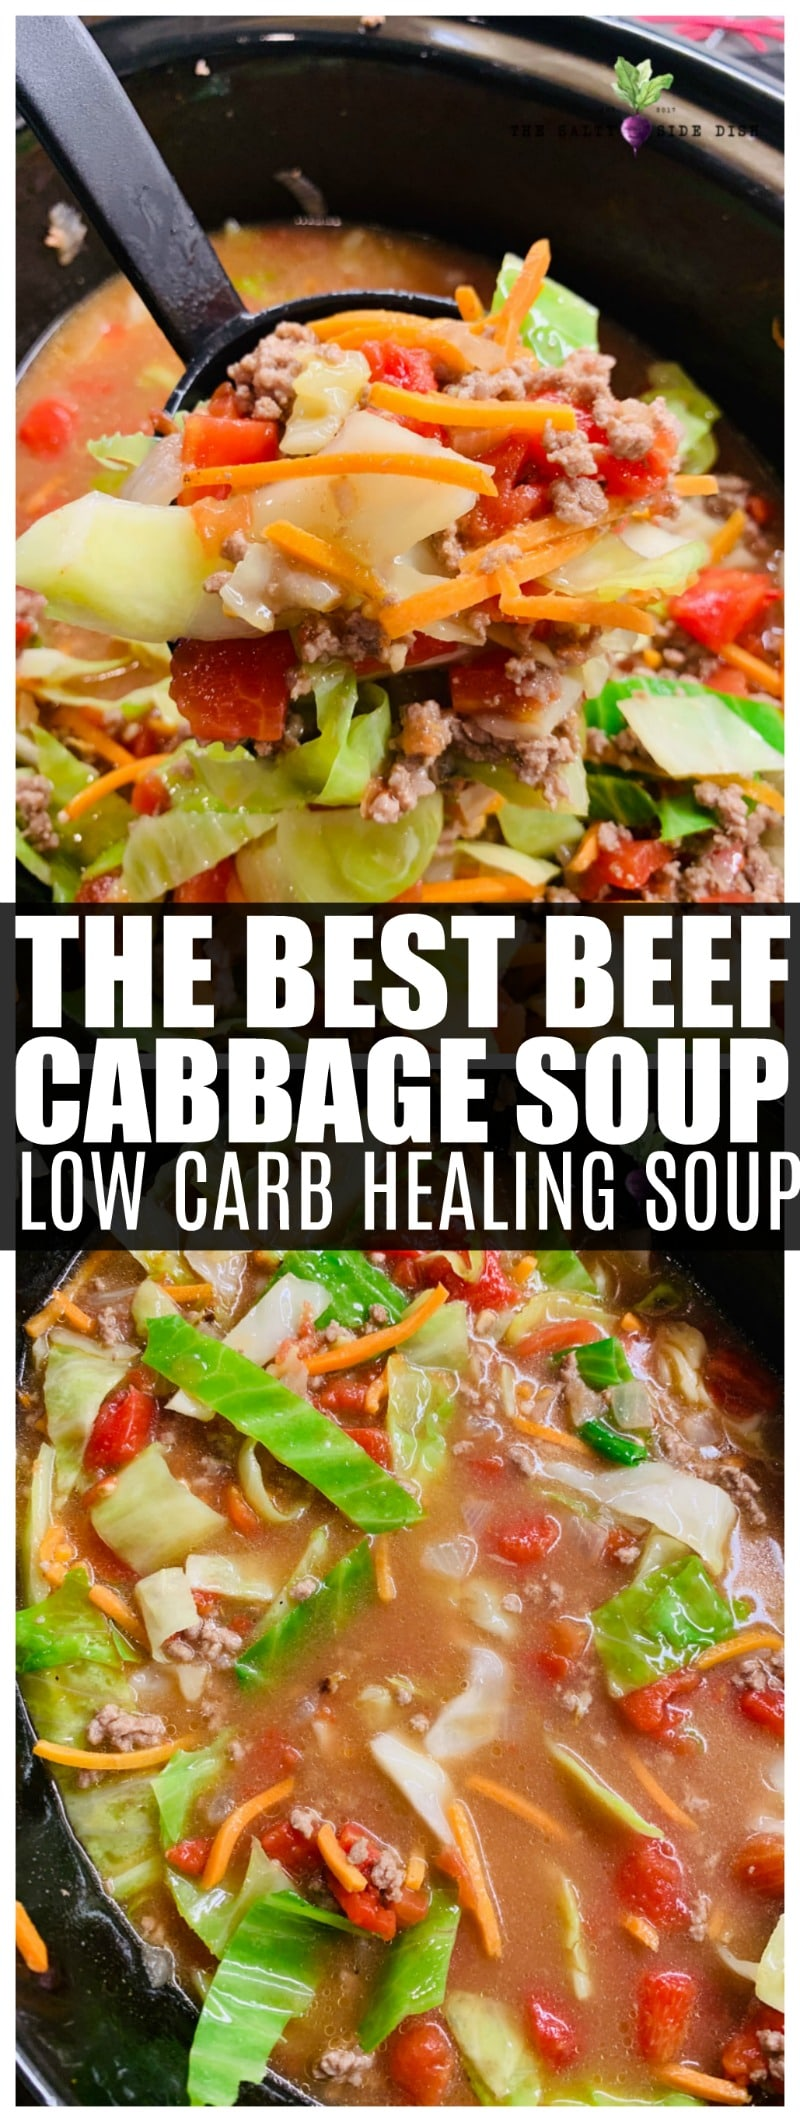 Beef Cabbage Soup | Hearty Delicious Vegetable Soup with Beef and Uniquely Mexican Flavored #cabbagesoup #soup #mexicansoup #saltysidedish #sidedish